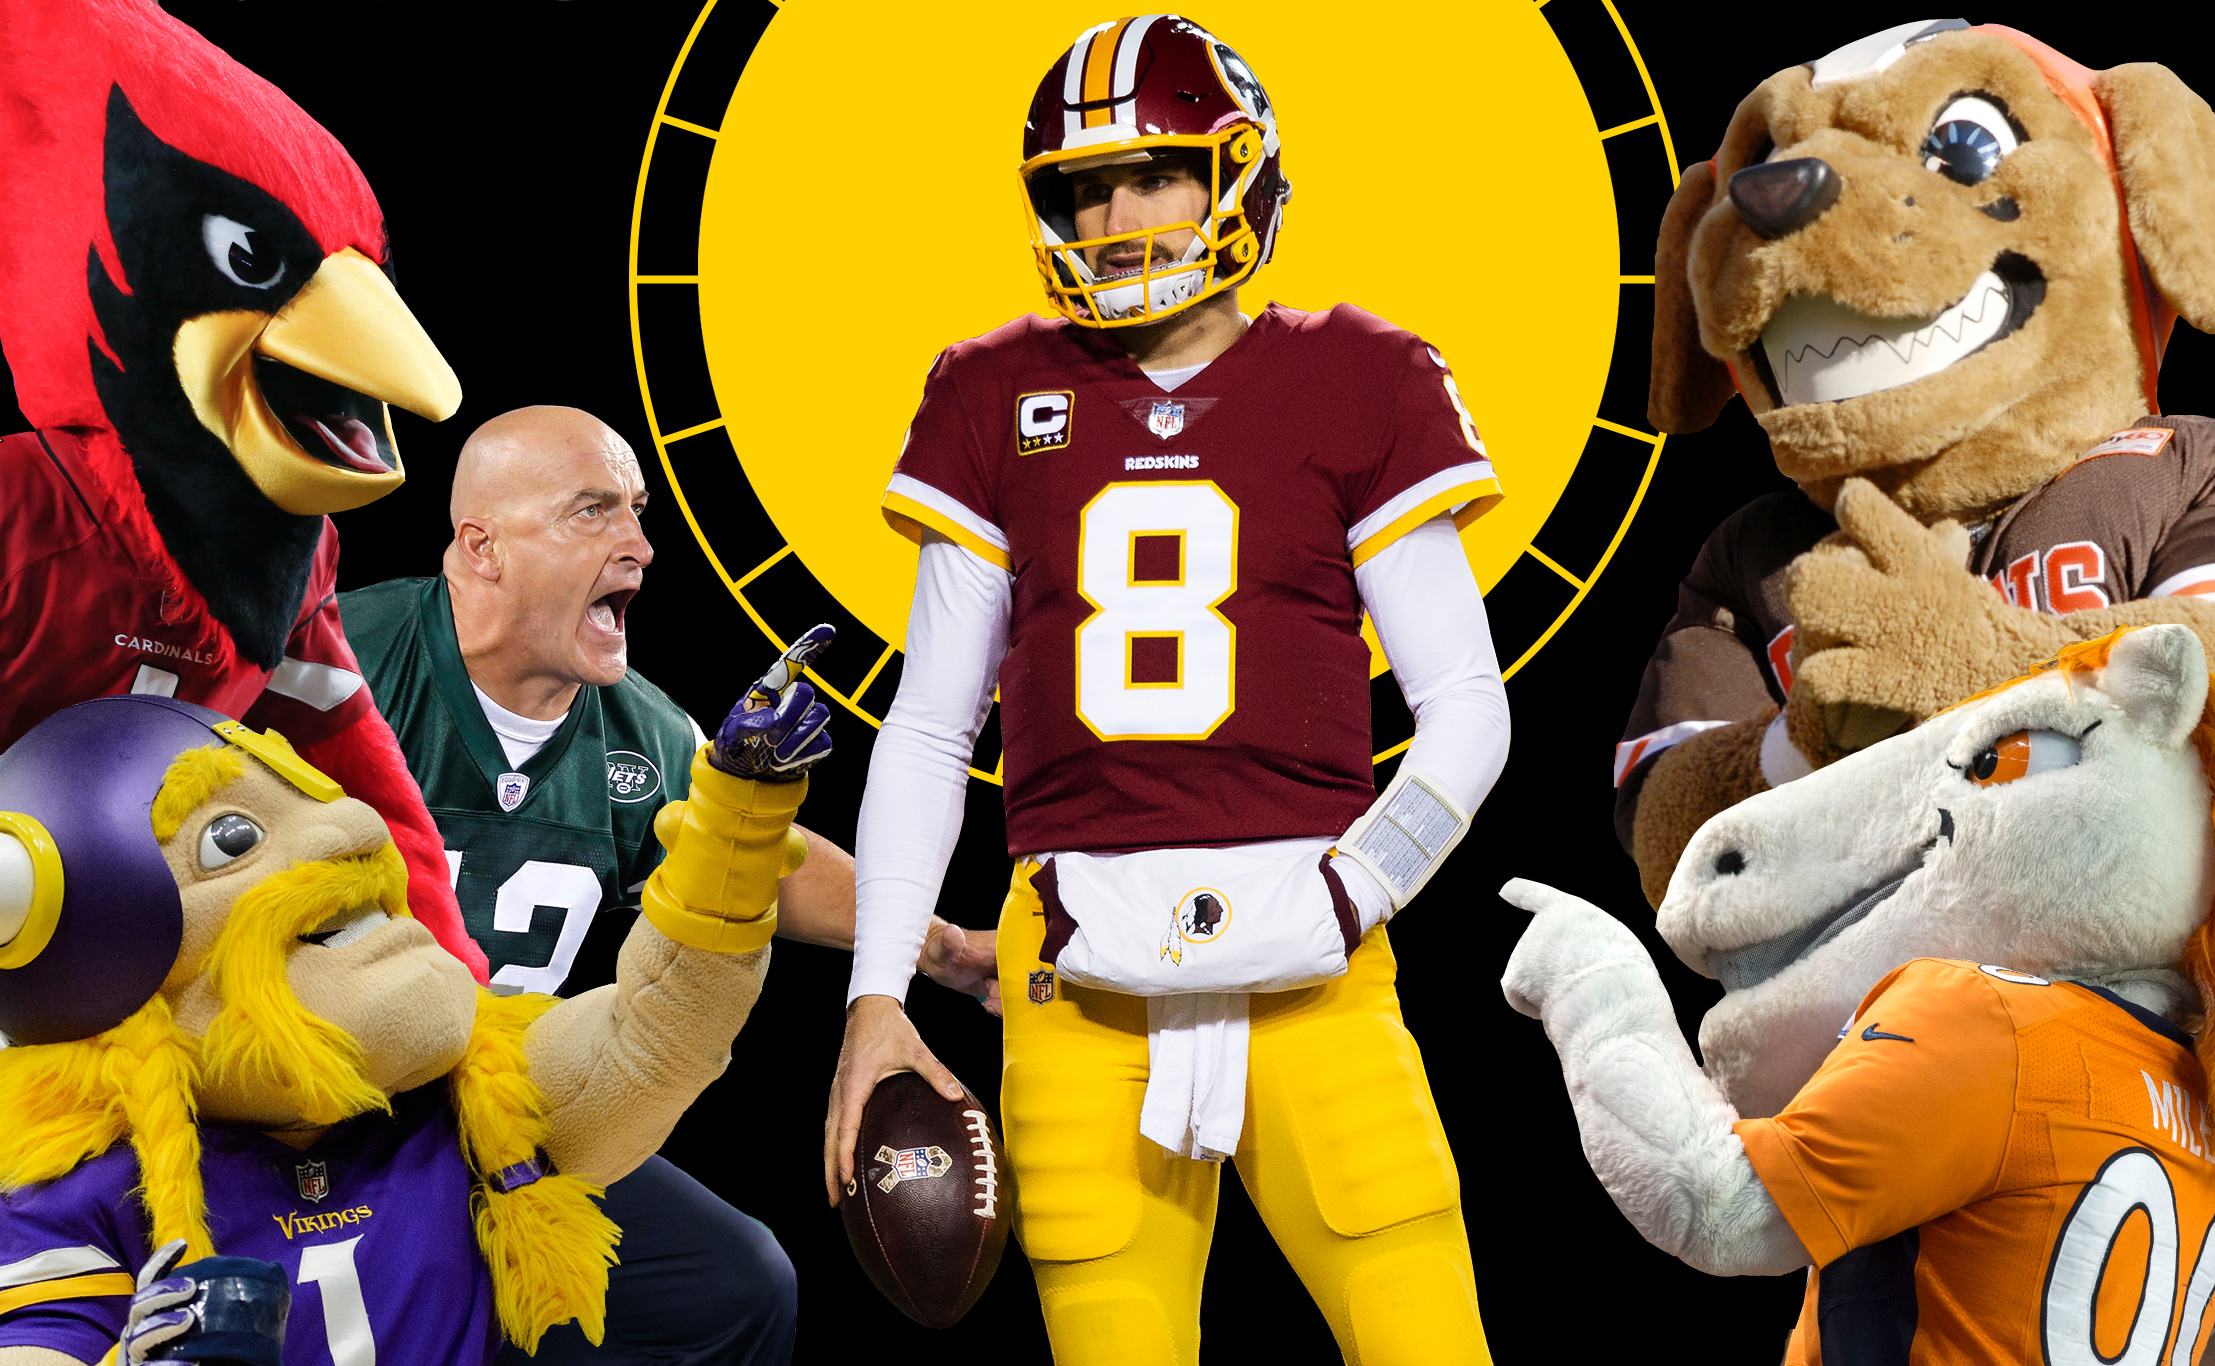 What's Kirk Cousins done to get millions?